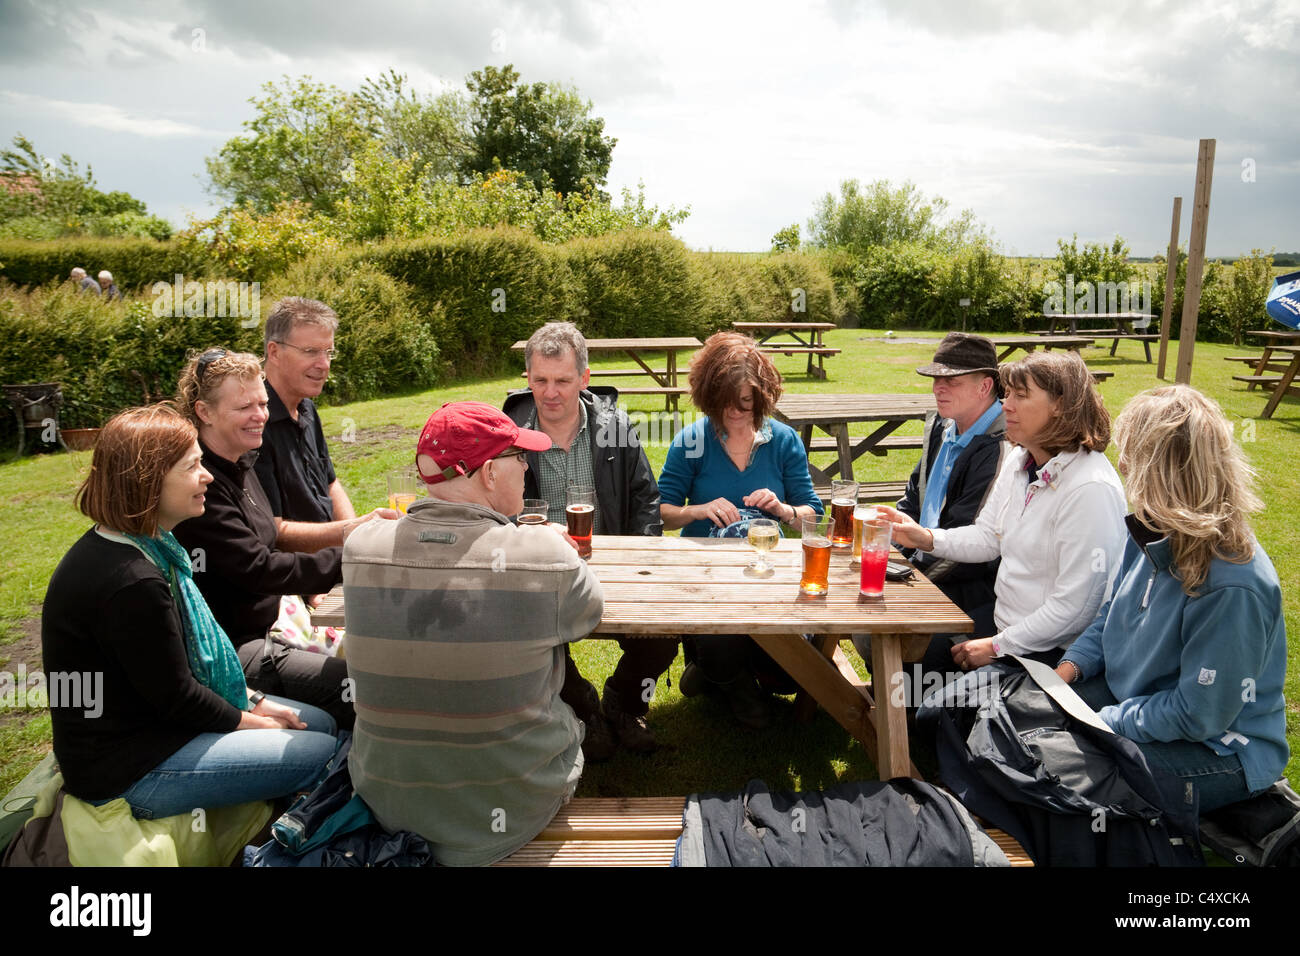 A group of people drinking in The Jolly Sailor pub beer garden, Orford, Suffolk UK - Stock Image